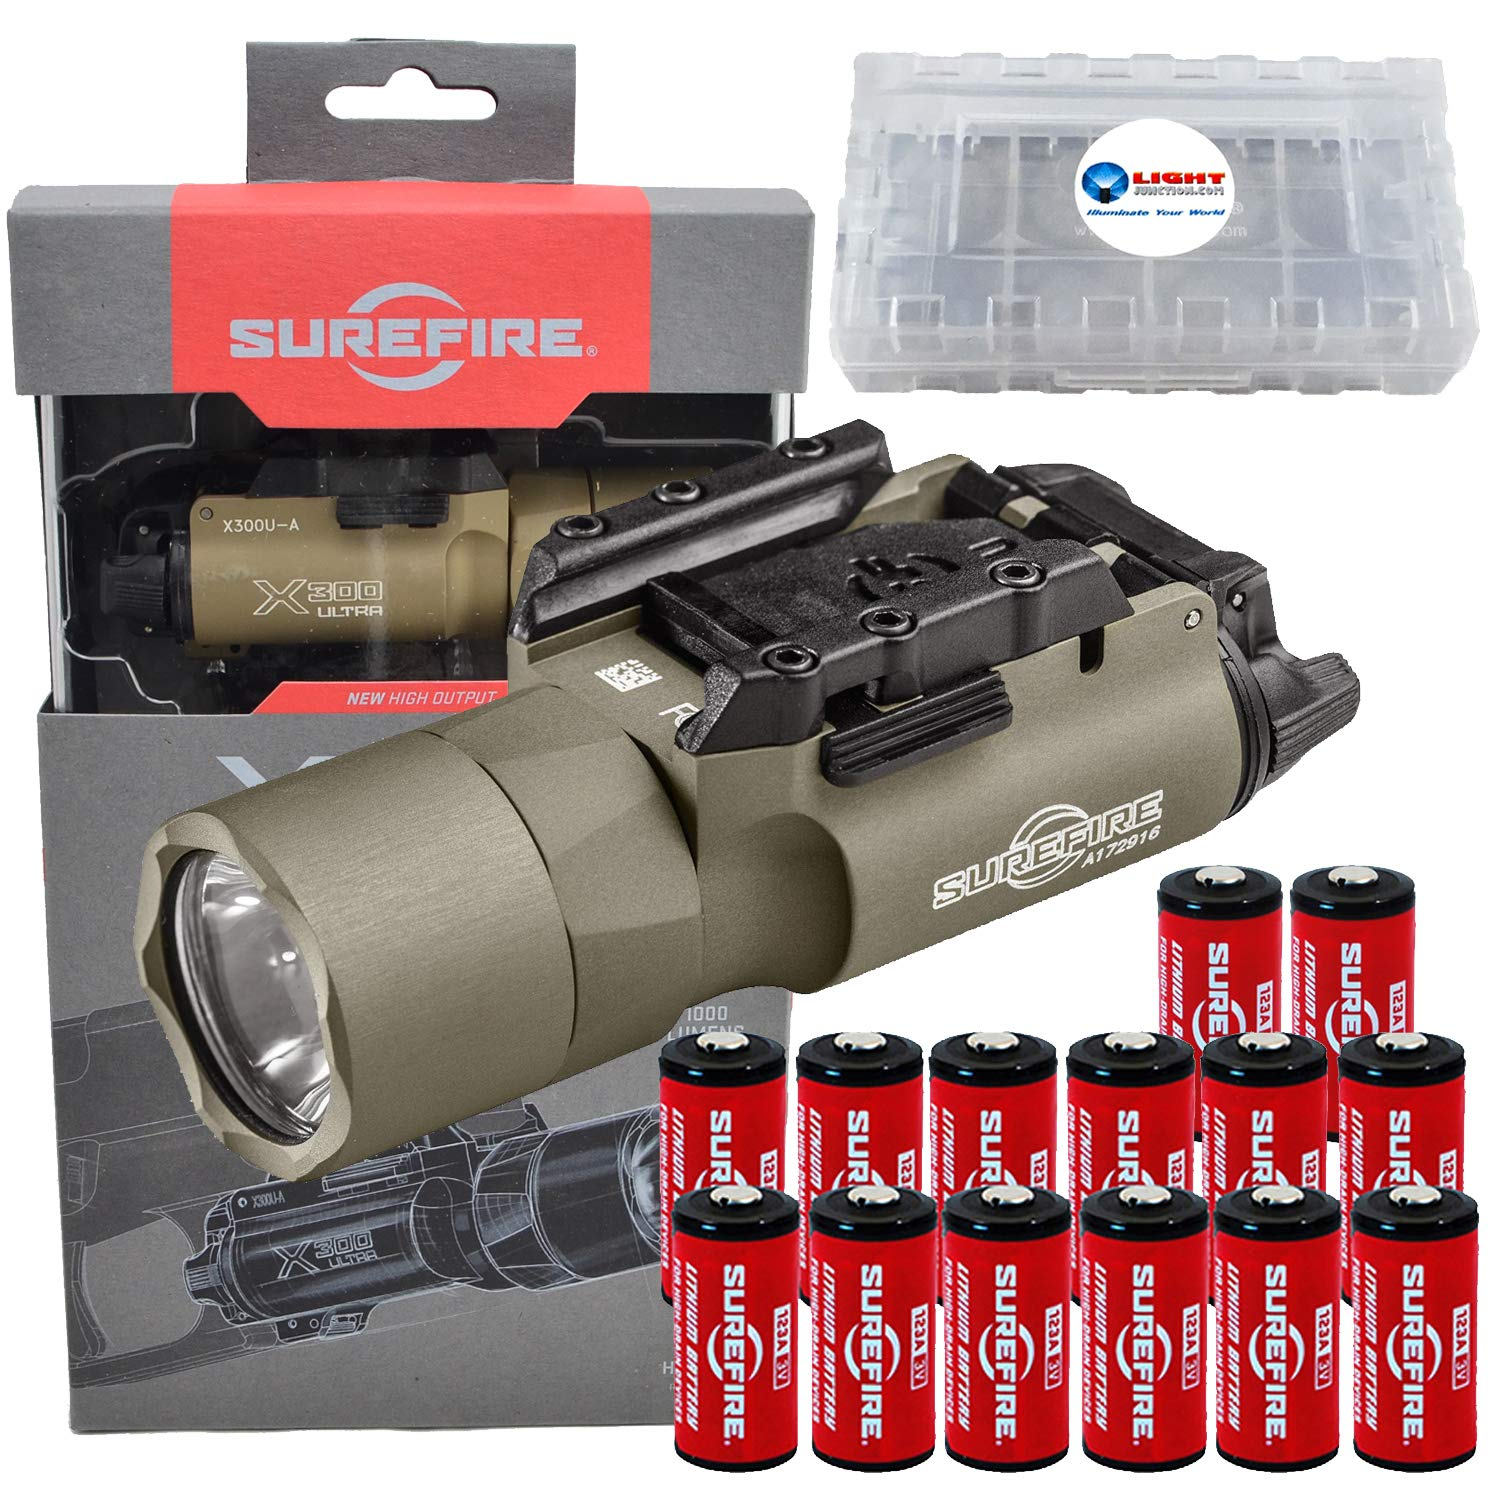 SureFire X300 Ultra High Output 1000 Lumens LED WeaponLight Tan (X300U-A) with 12 Extra CR123A Batteries and 3 Lightjunction Battery Cases by SureFire